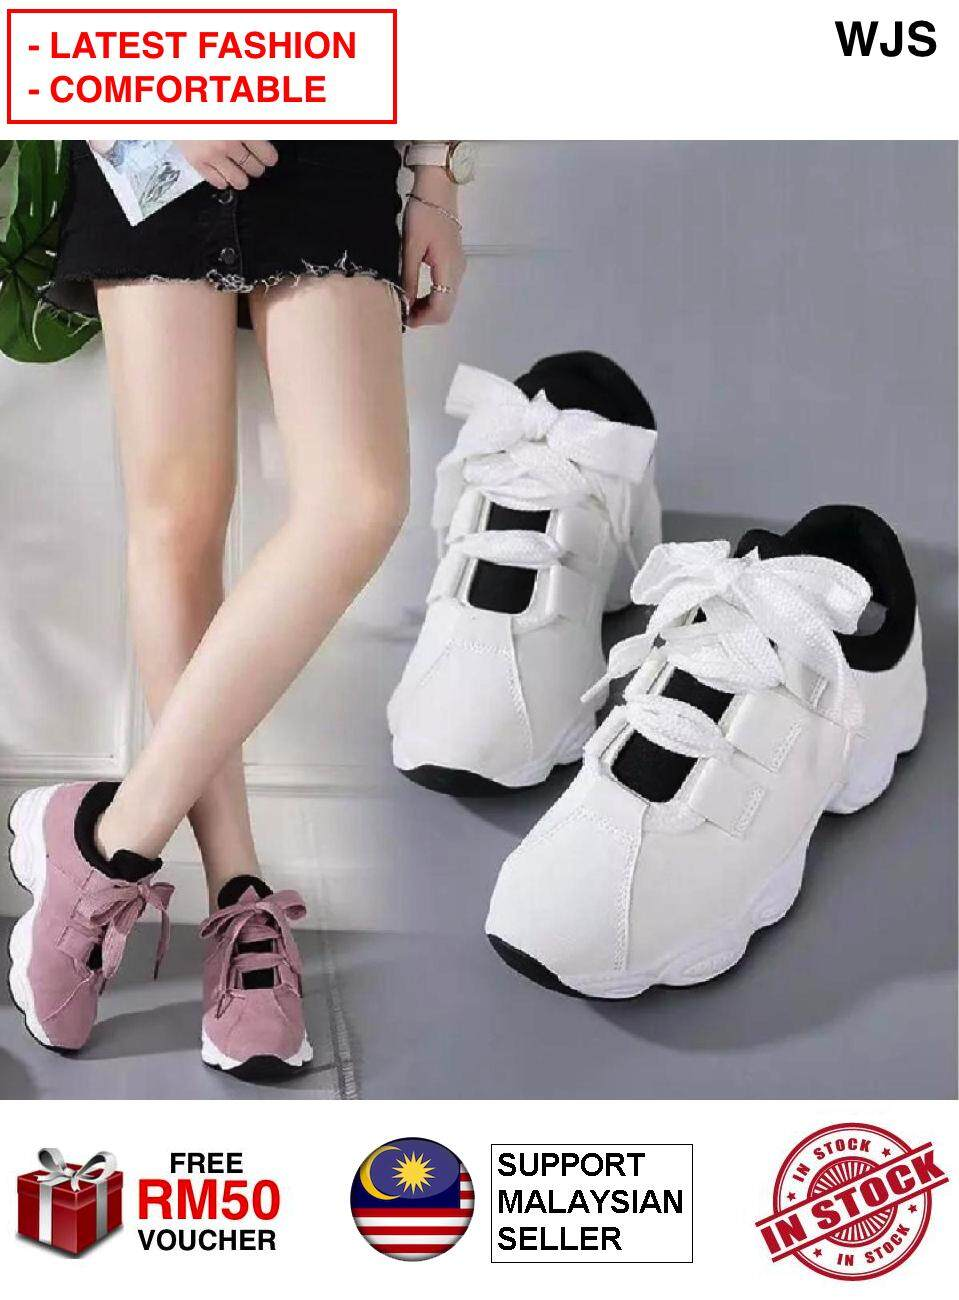 (COMFORTABLE + FASHIONABLE) WJS 2020 Sherry Sneakers Sherry Shoe Korean Version of The Wild Student Sport Shoe Sports Shoe Casual Shoe Women's Shoe BEIGE GREY PINK BLACK [FREE RM 50 VOUCHER]